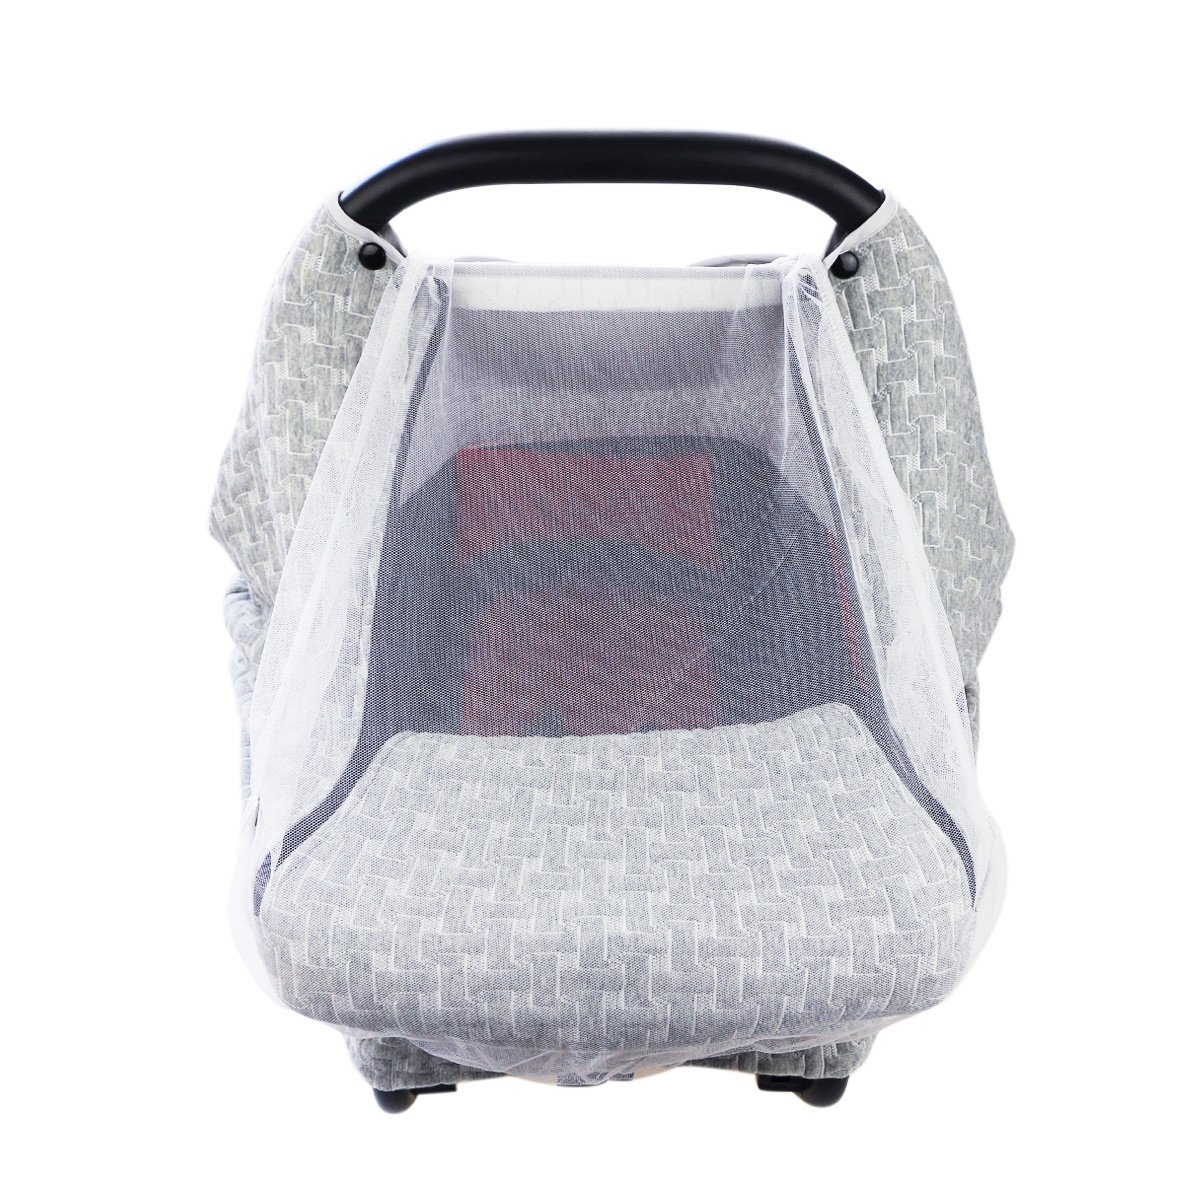 Hisprout Breathable 100% Polyester Air Layer Baby Car Seat Cover Canopy& Nursing Cover, Baby Mosquito Net